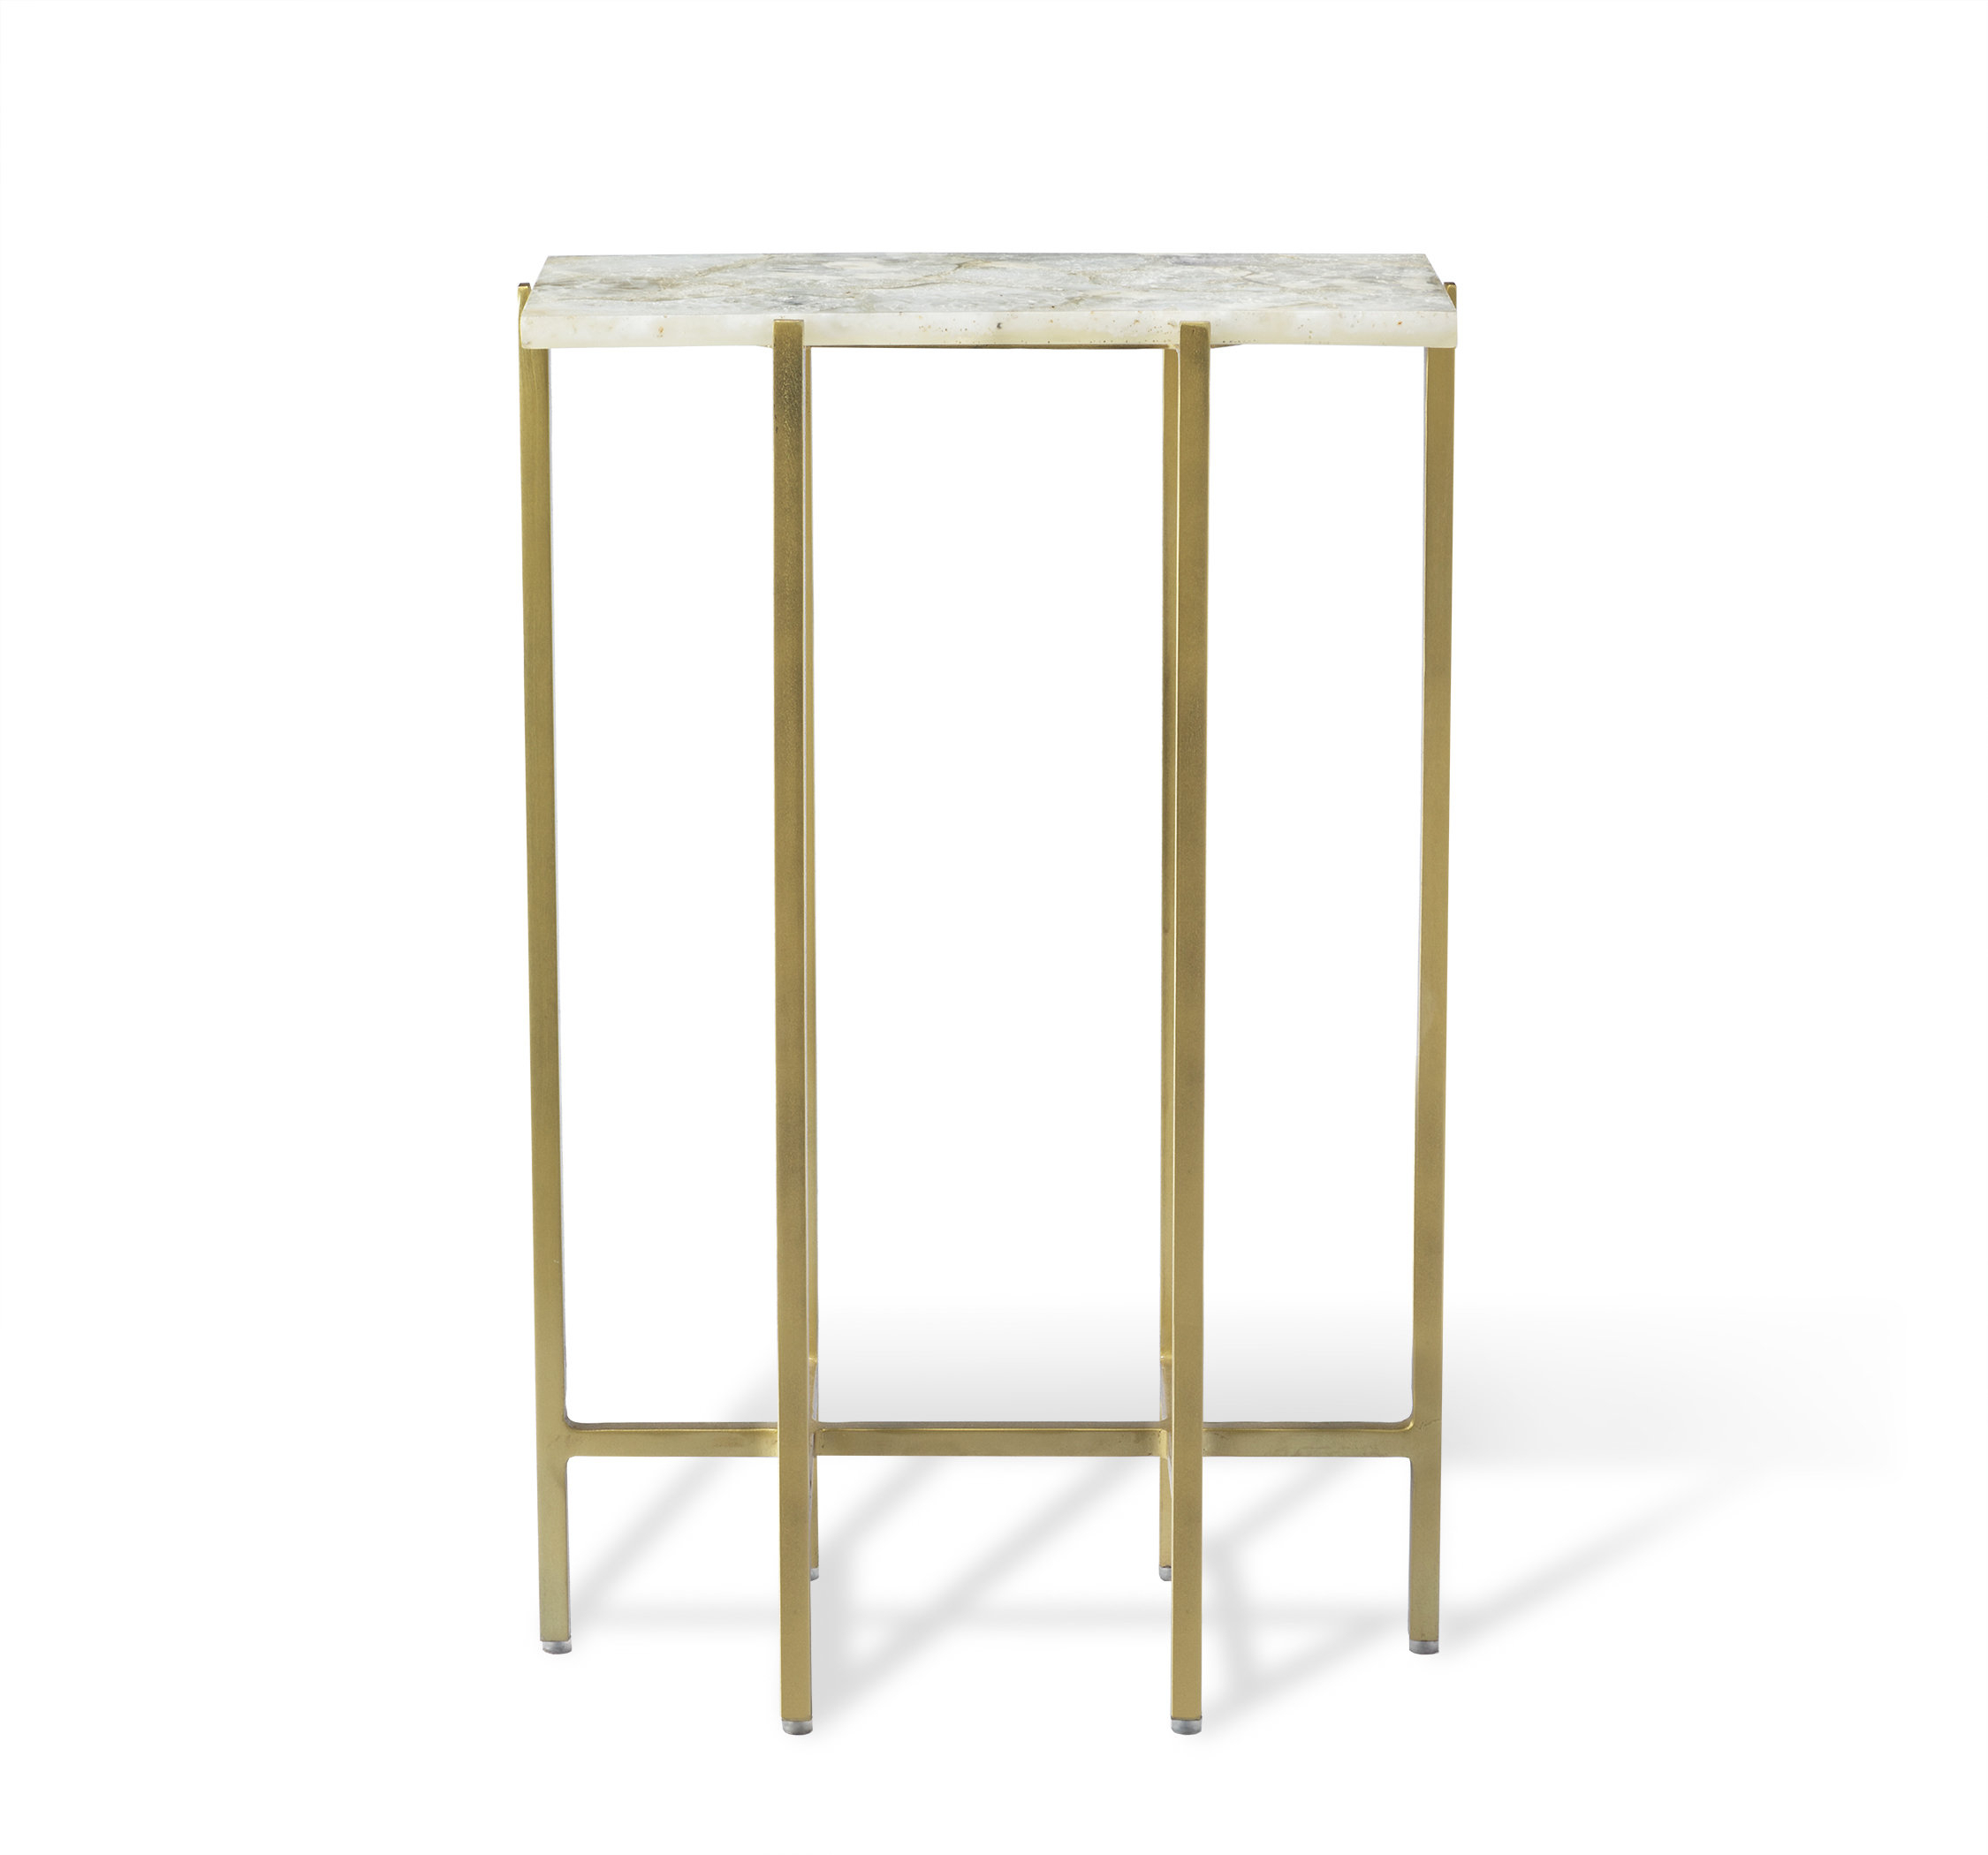 Interlude Leonie Rectangular Agate End Table | Wayfair with Mix Agate Metal Frame Console Tables (Image 17 of 30)